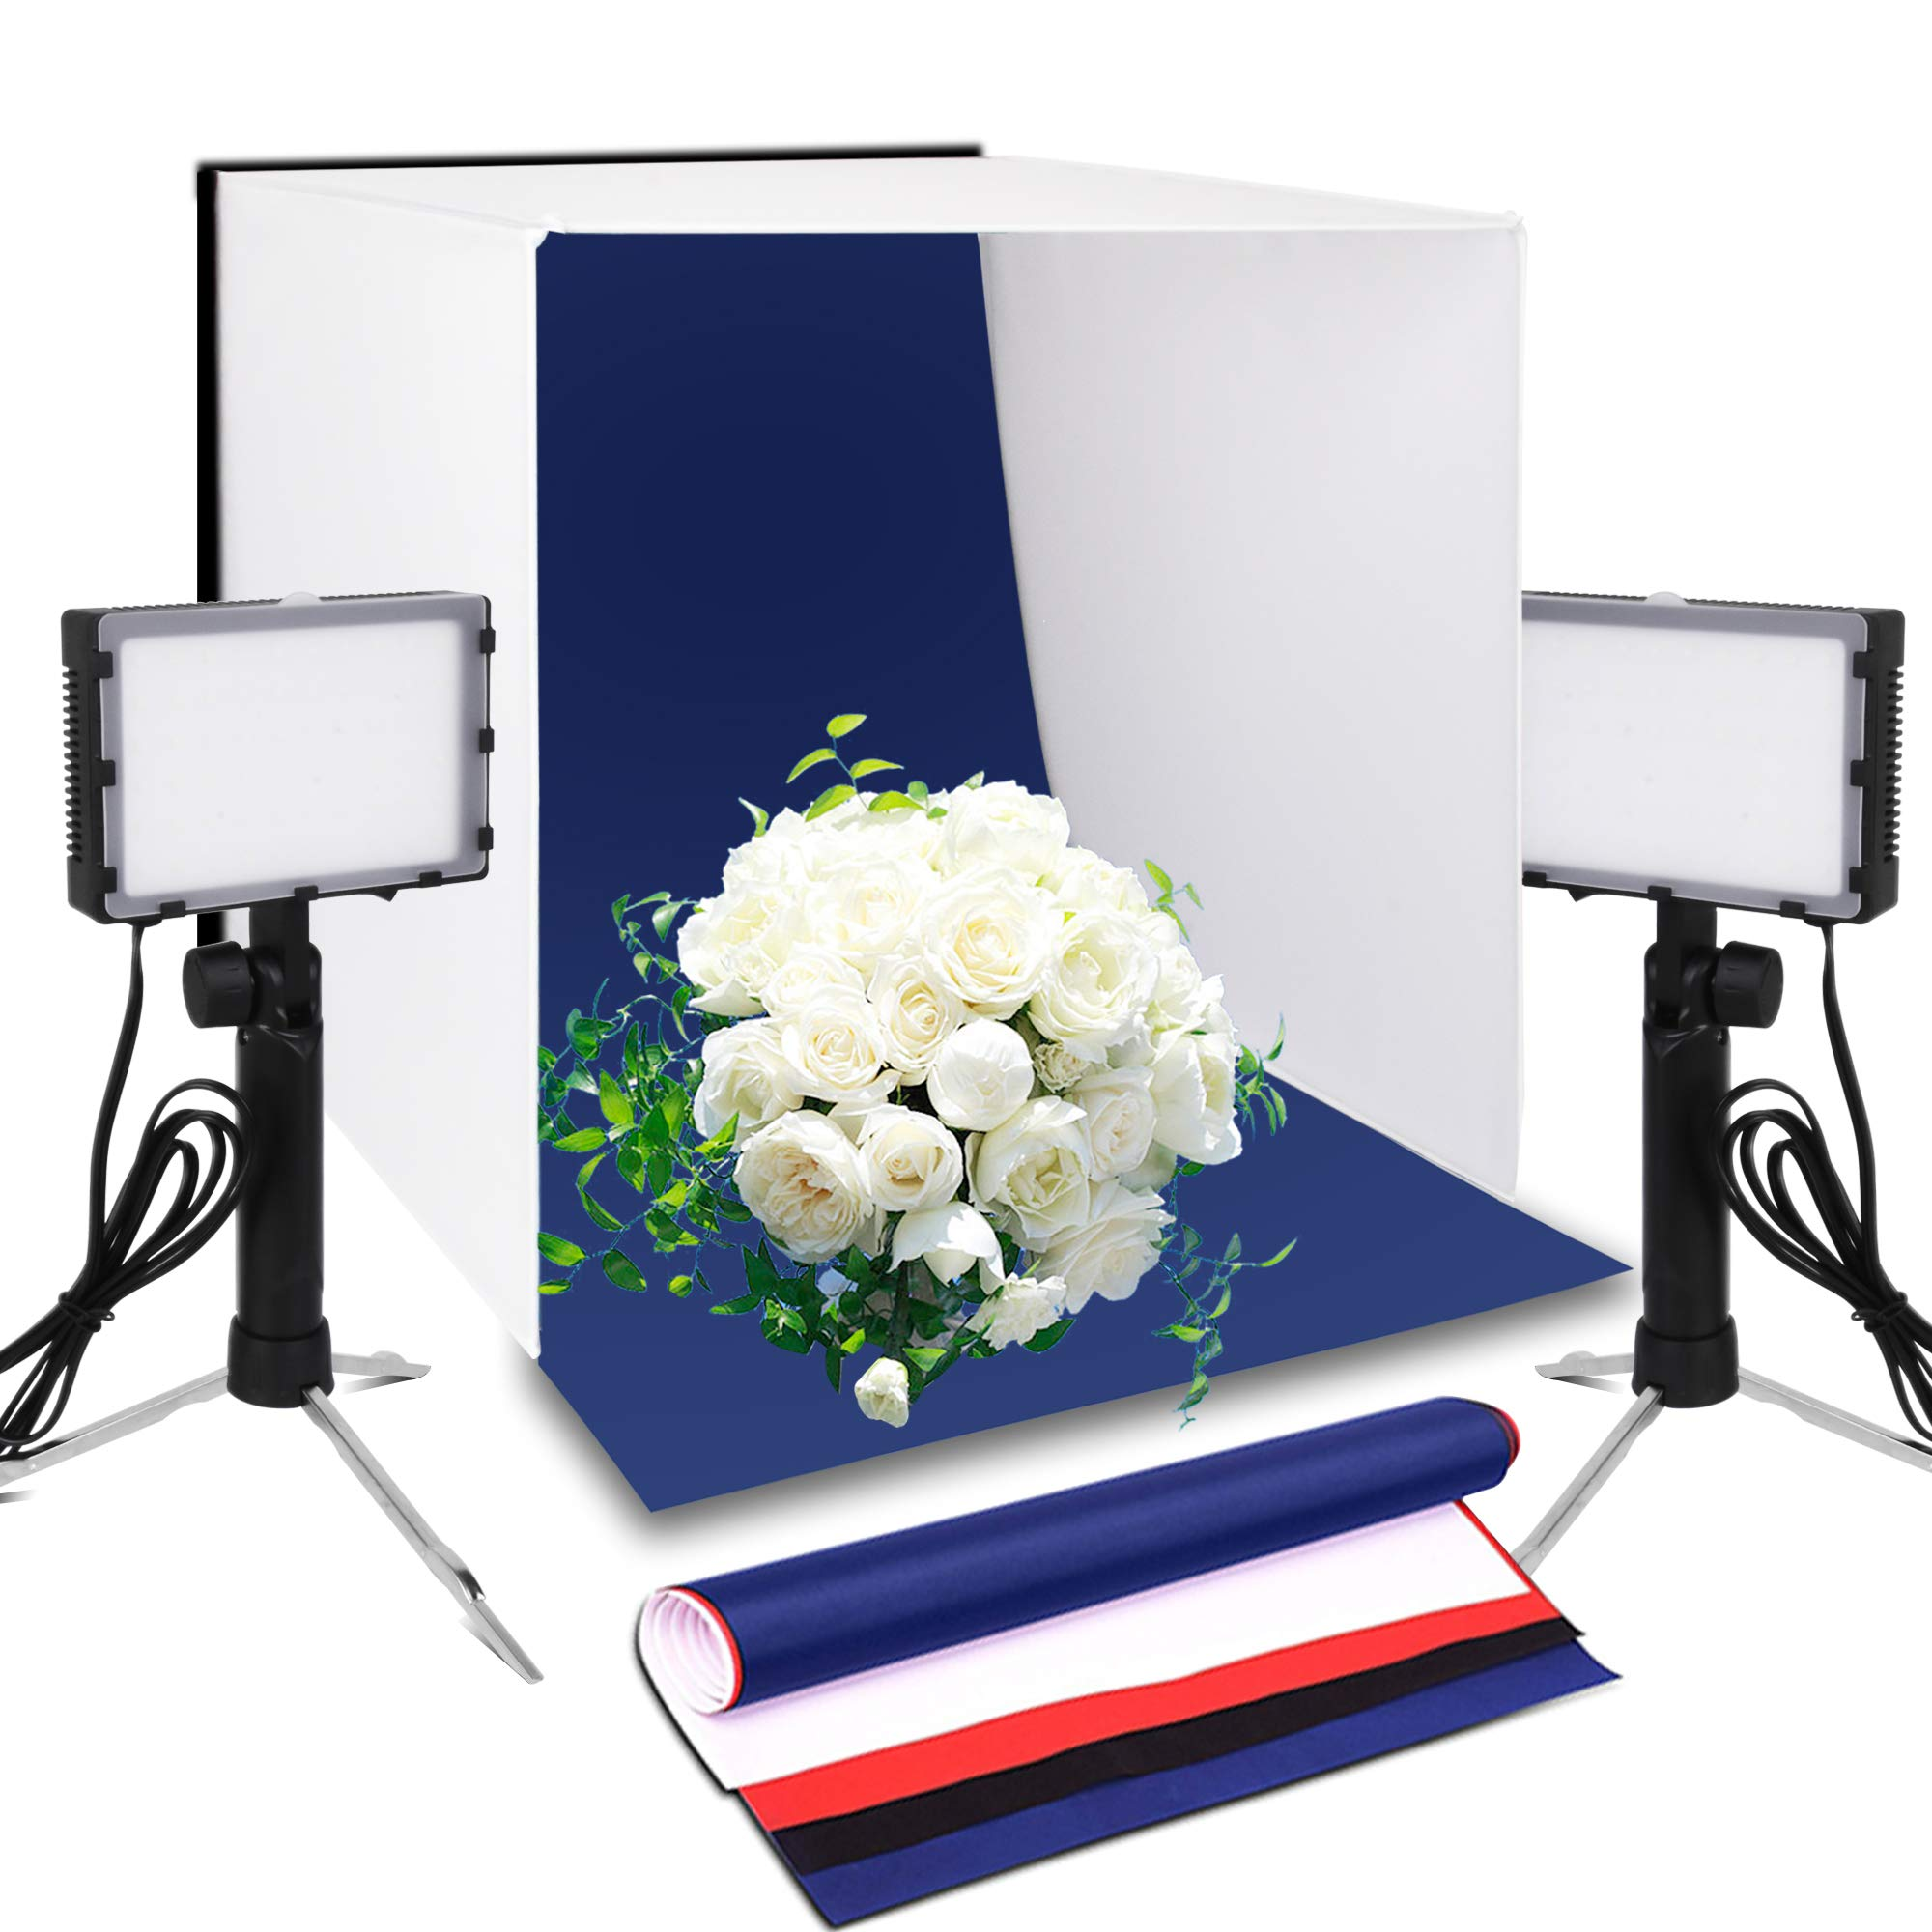 Emart 20 x 20 Inch Portable Photo Studio Kit Photography Light Box Table Top LED Lighting for Product Photography by EMART